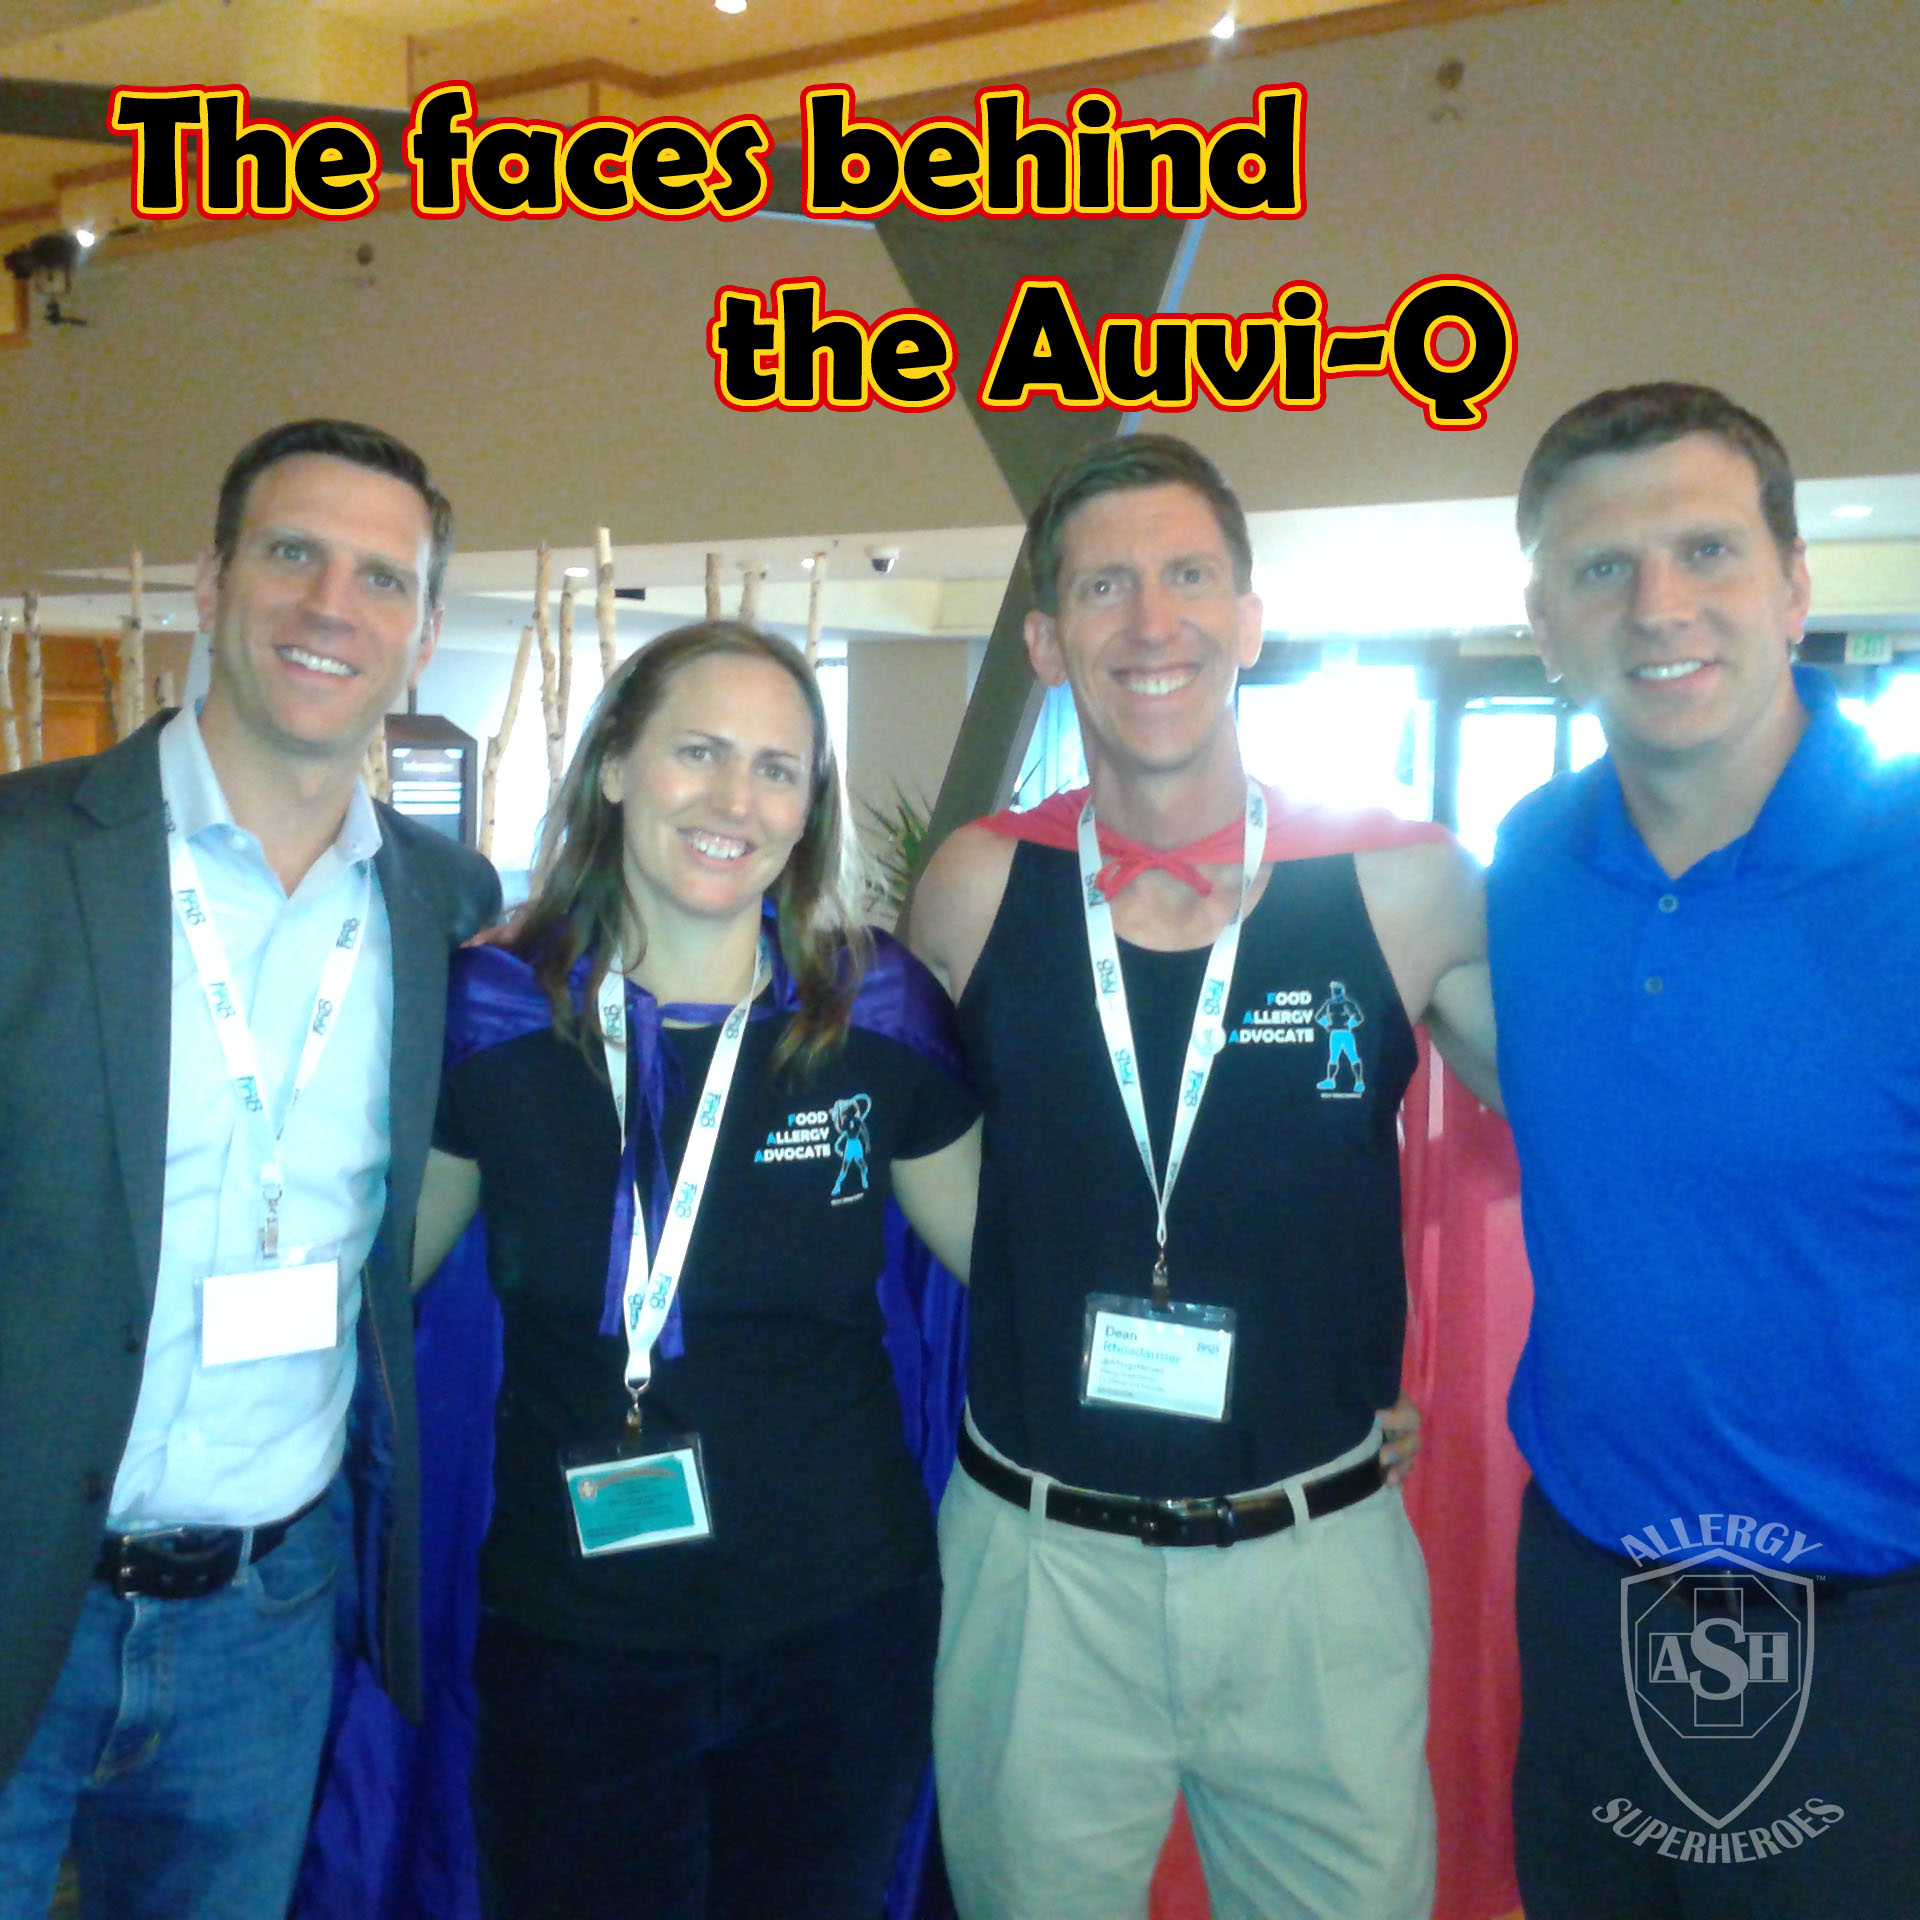 Allergy Superheroes meet Eric and Evan Edwards of kaleo - inventors of the Auvi-Q!